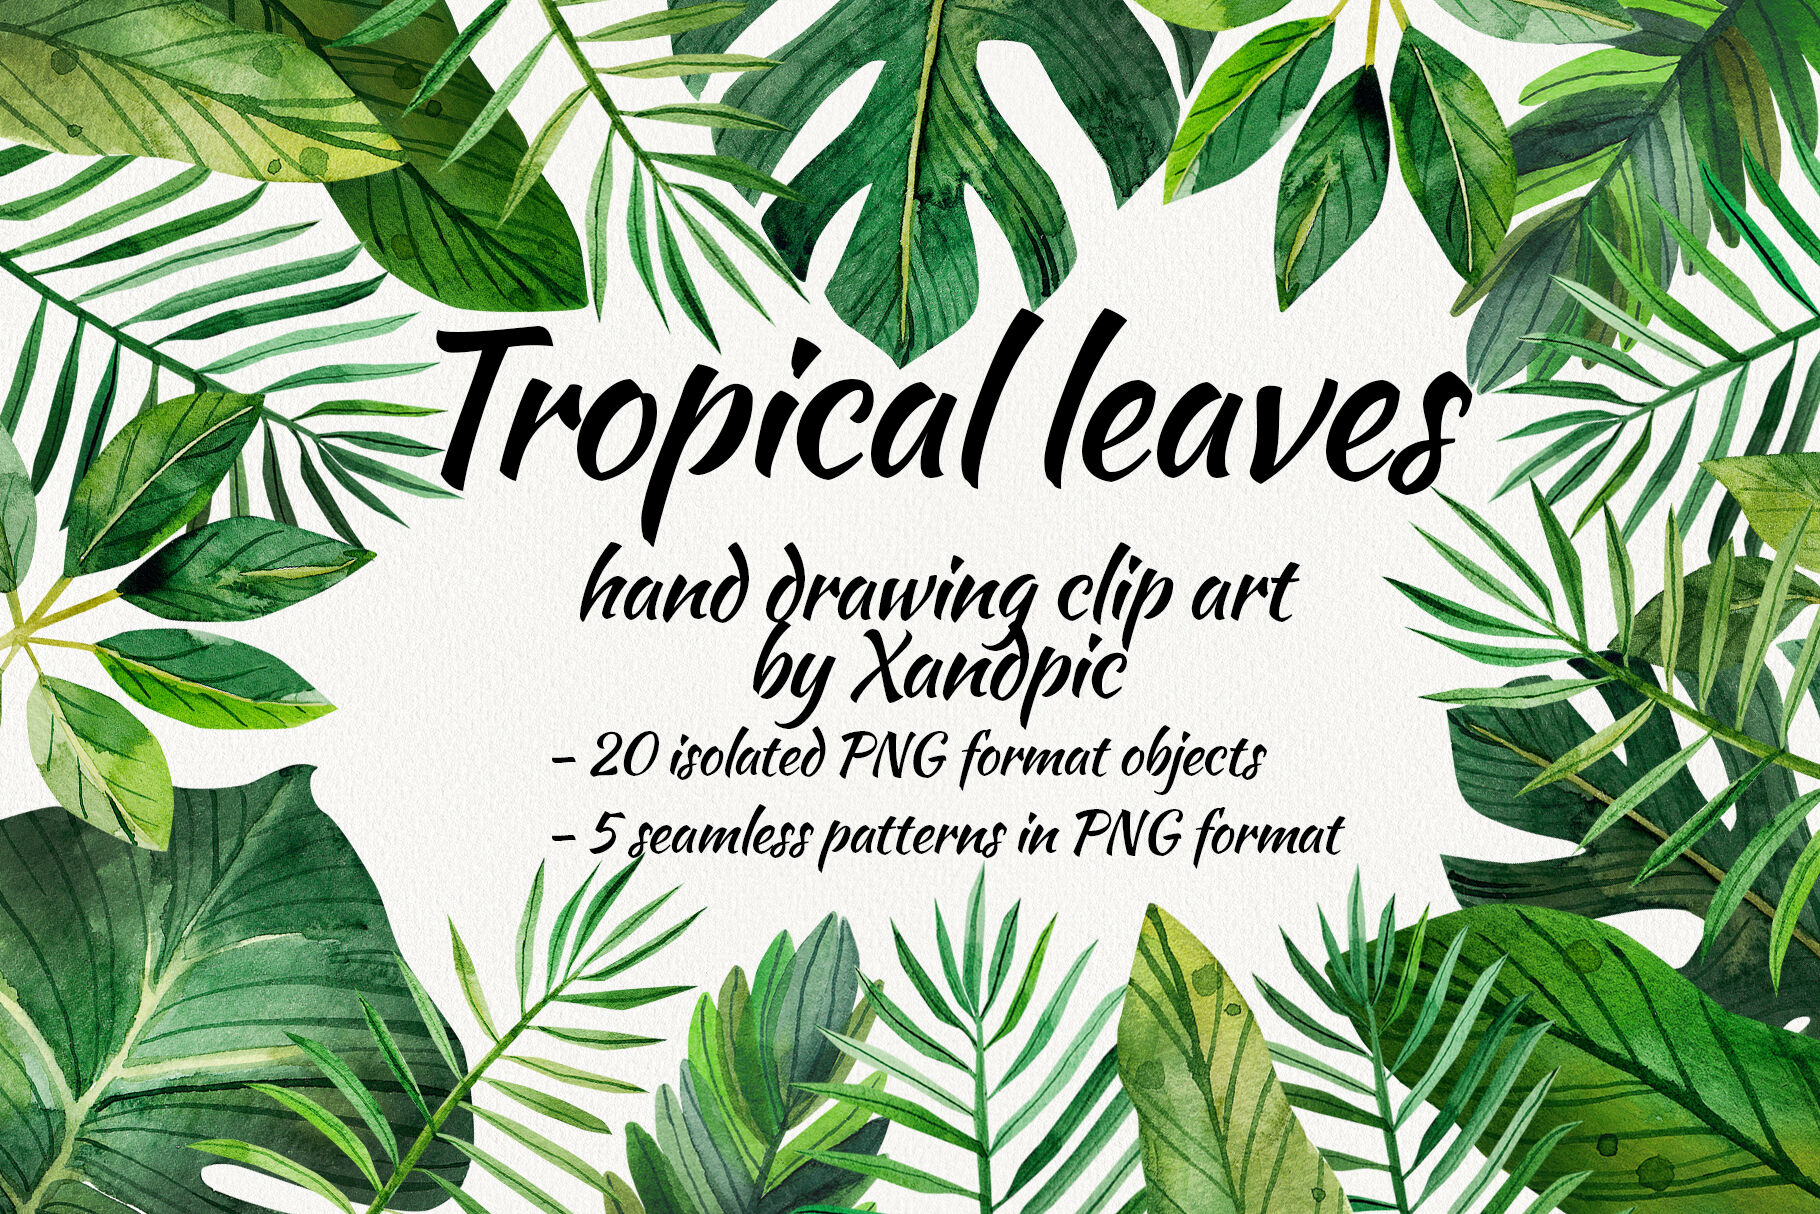 Watercolor Tropical Leaves Clip Art Digital Drawing Tropical Leaves By Xandpic Art Thehungryjpeg Com Tropical rainforest plants that can be grown. watercolor tropical leaves clip art